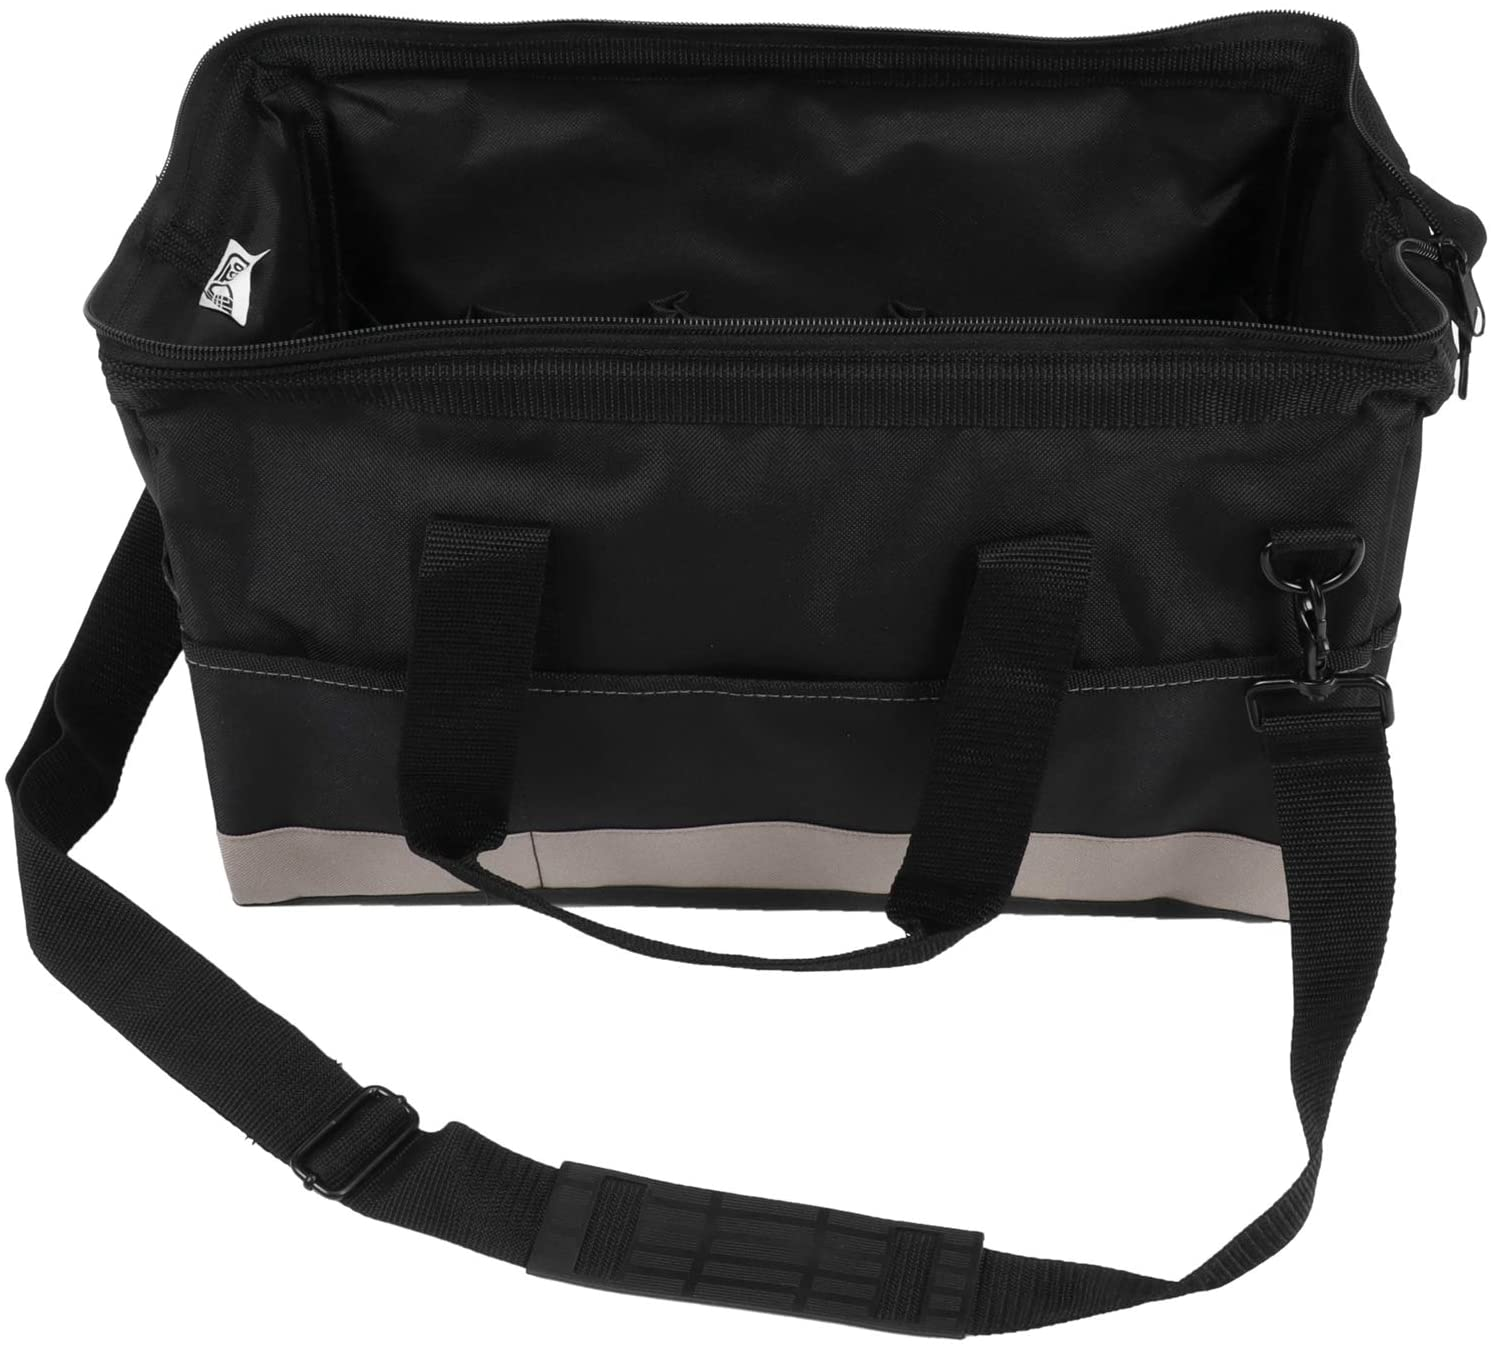 Tool Storage Bag, Garden Tool Tote Easy To Disassemble and Place